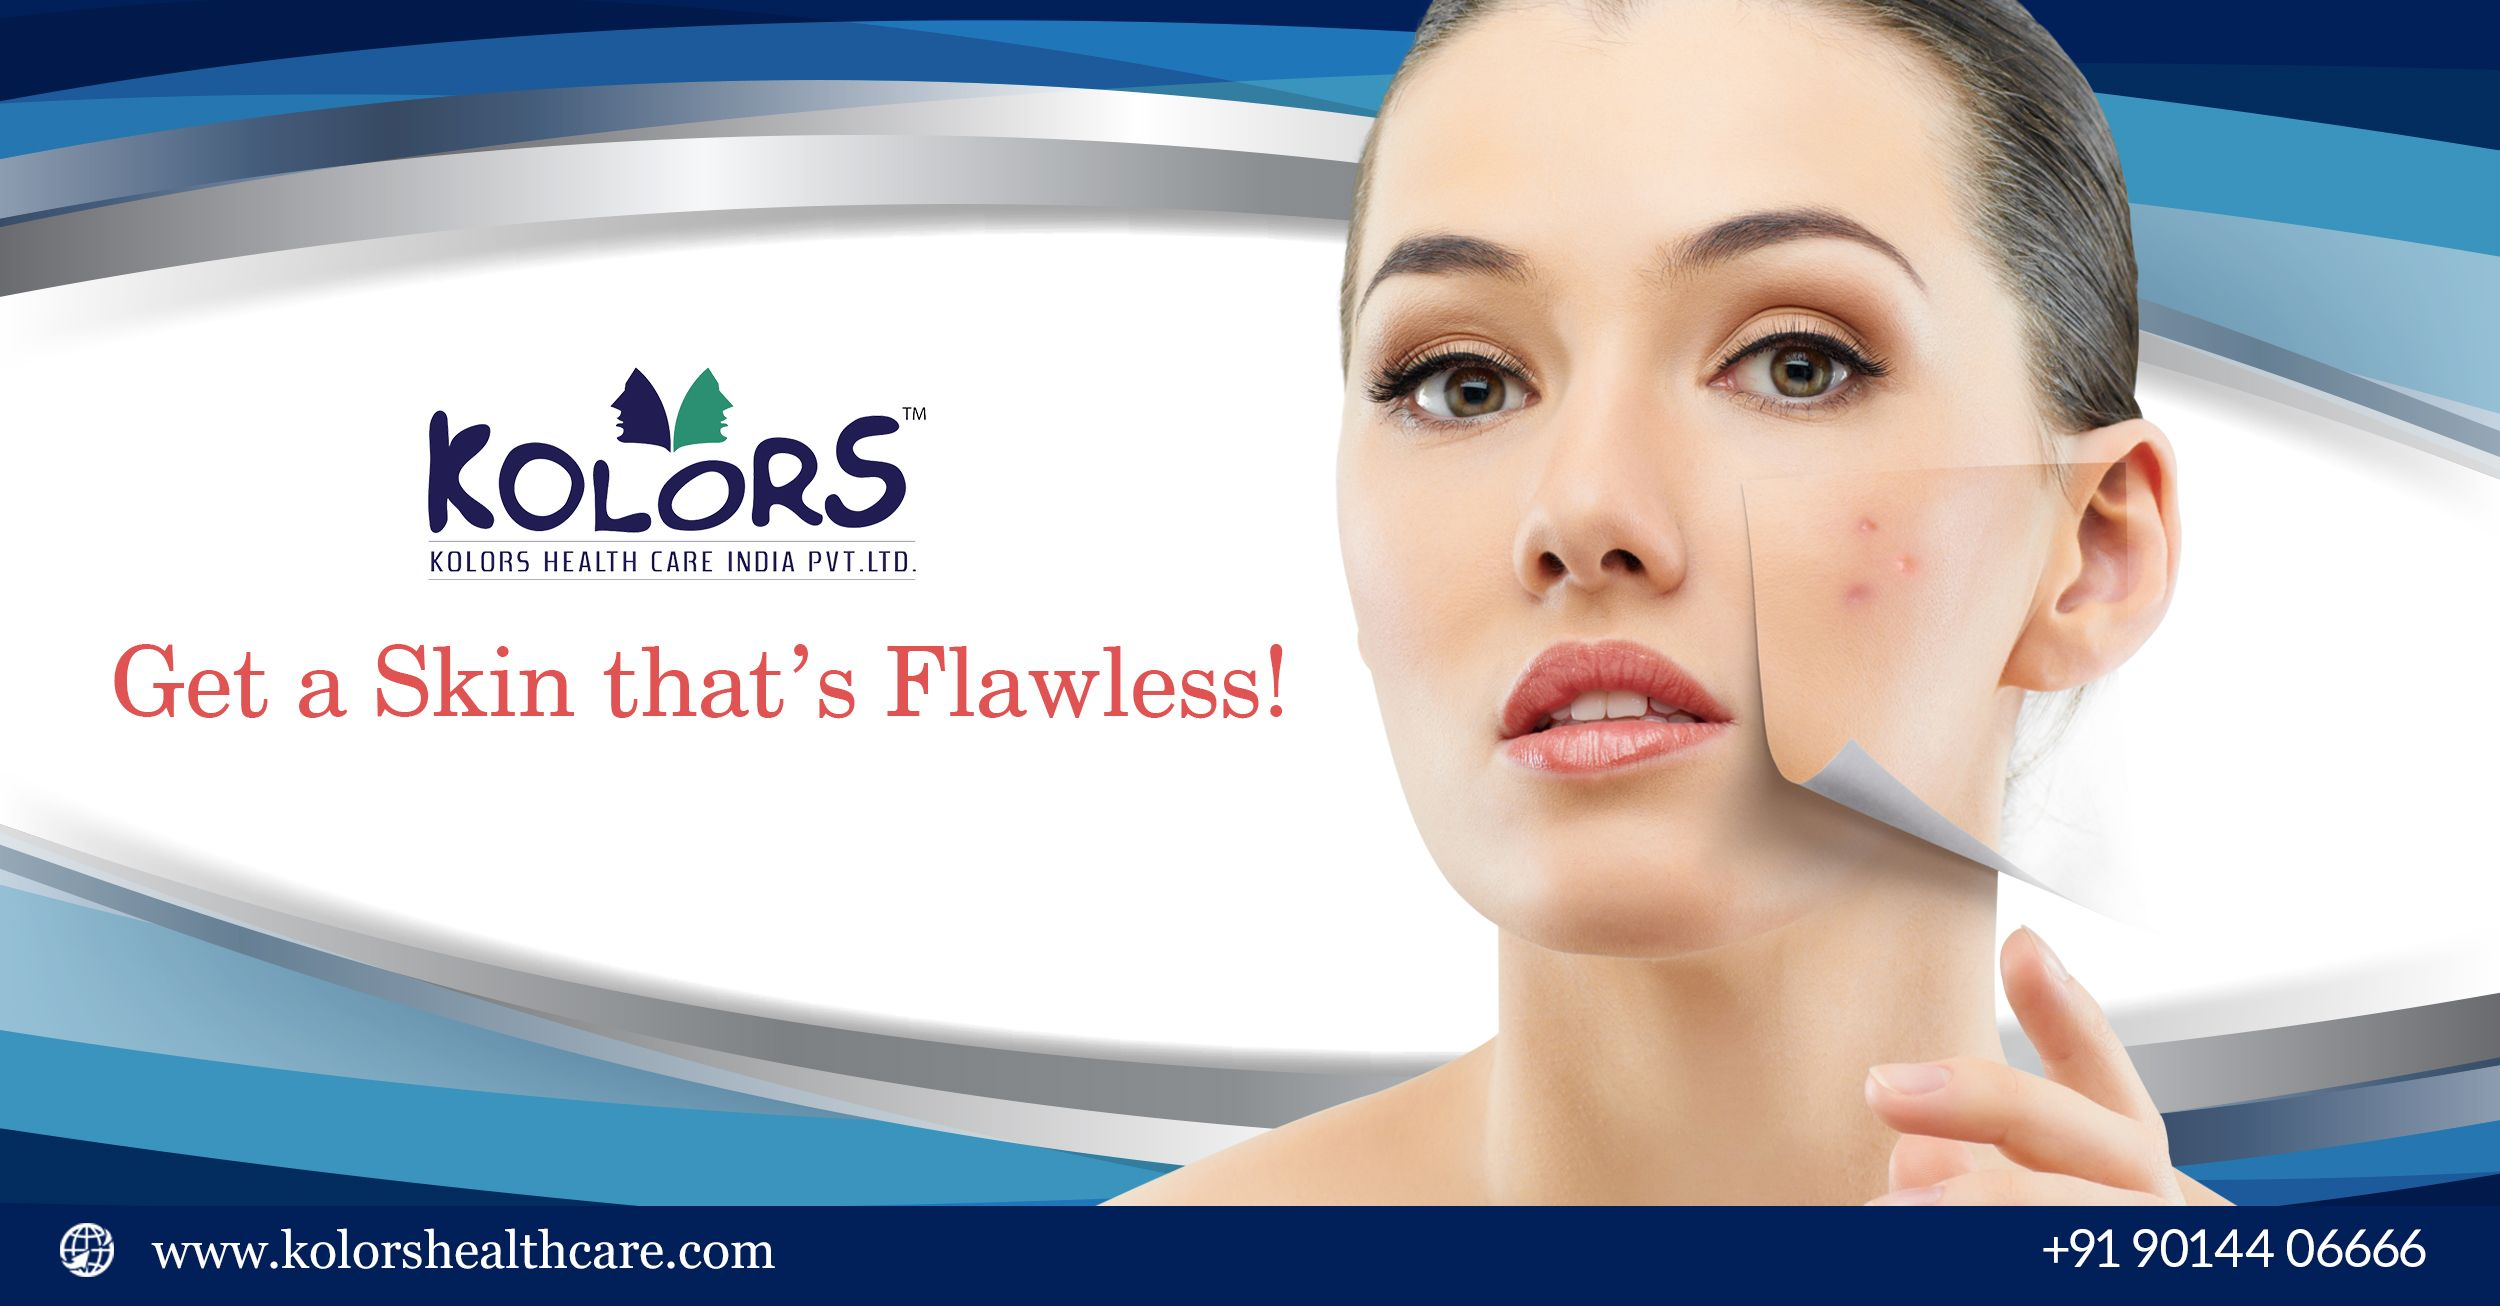 Now, it's easy to eliminate darkspots and dullskin with